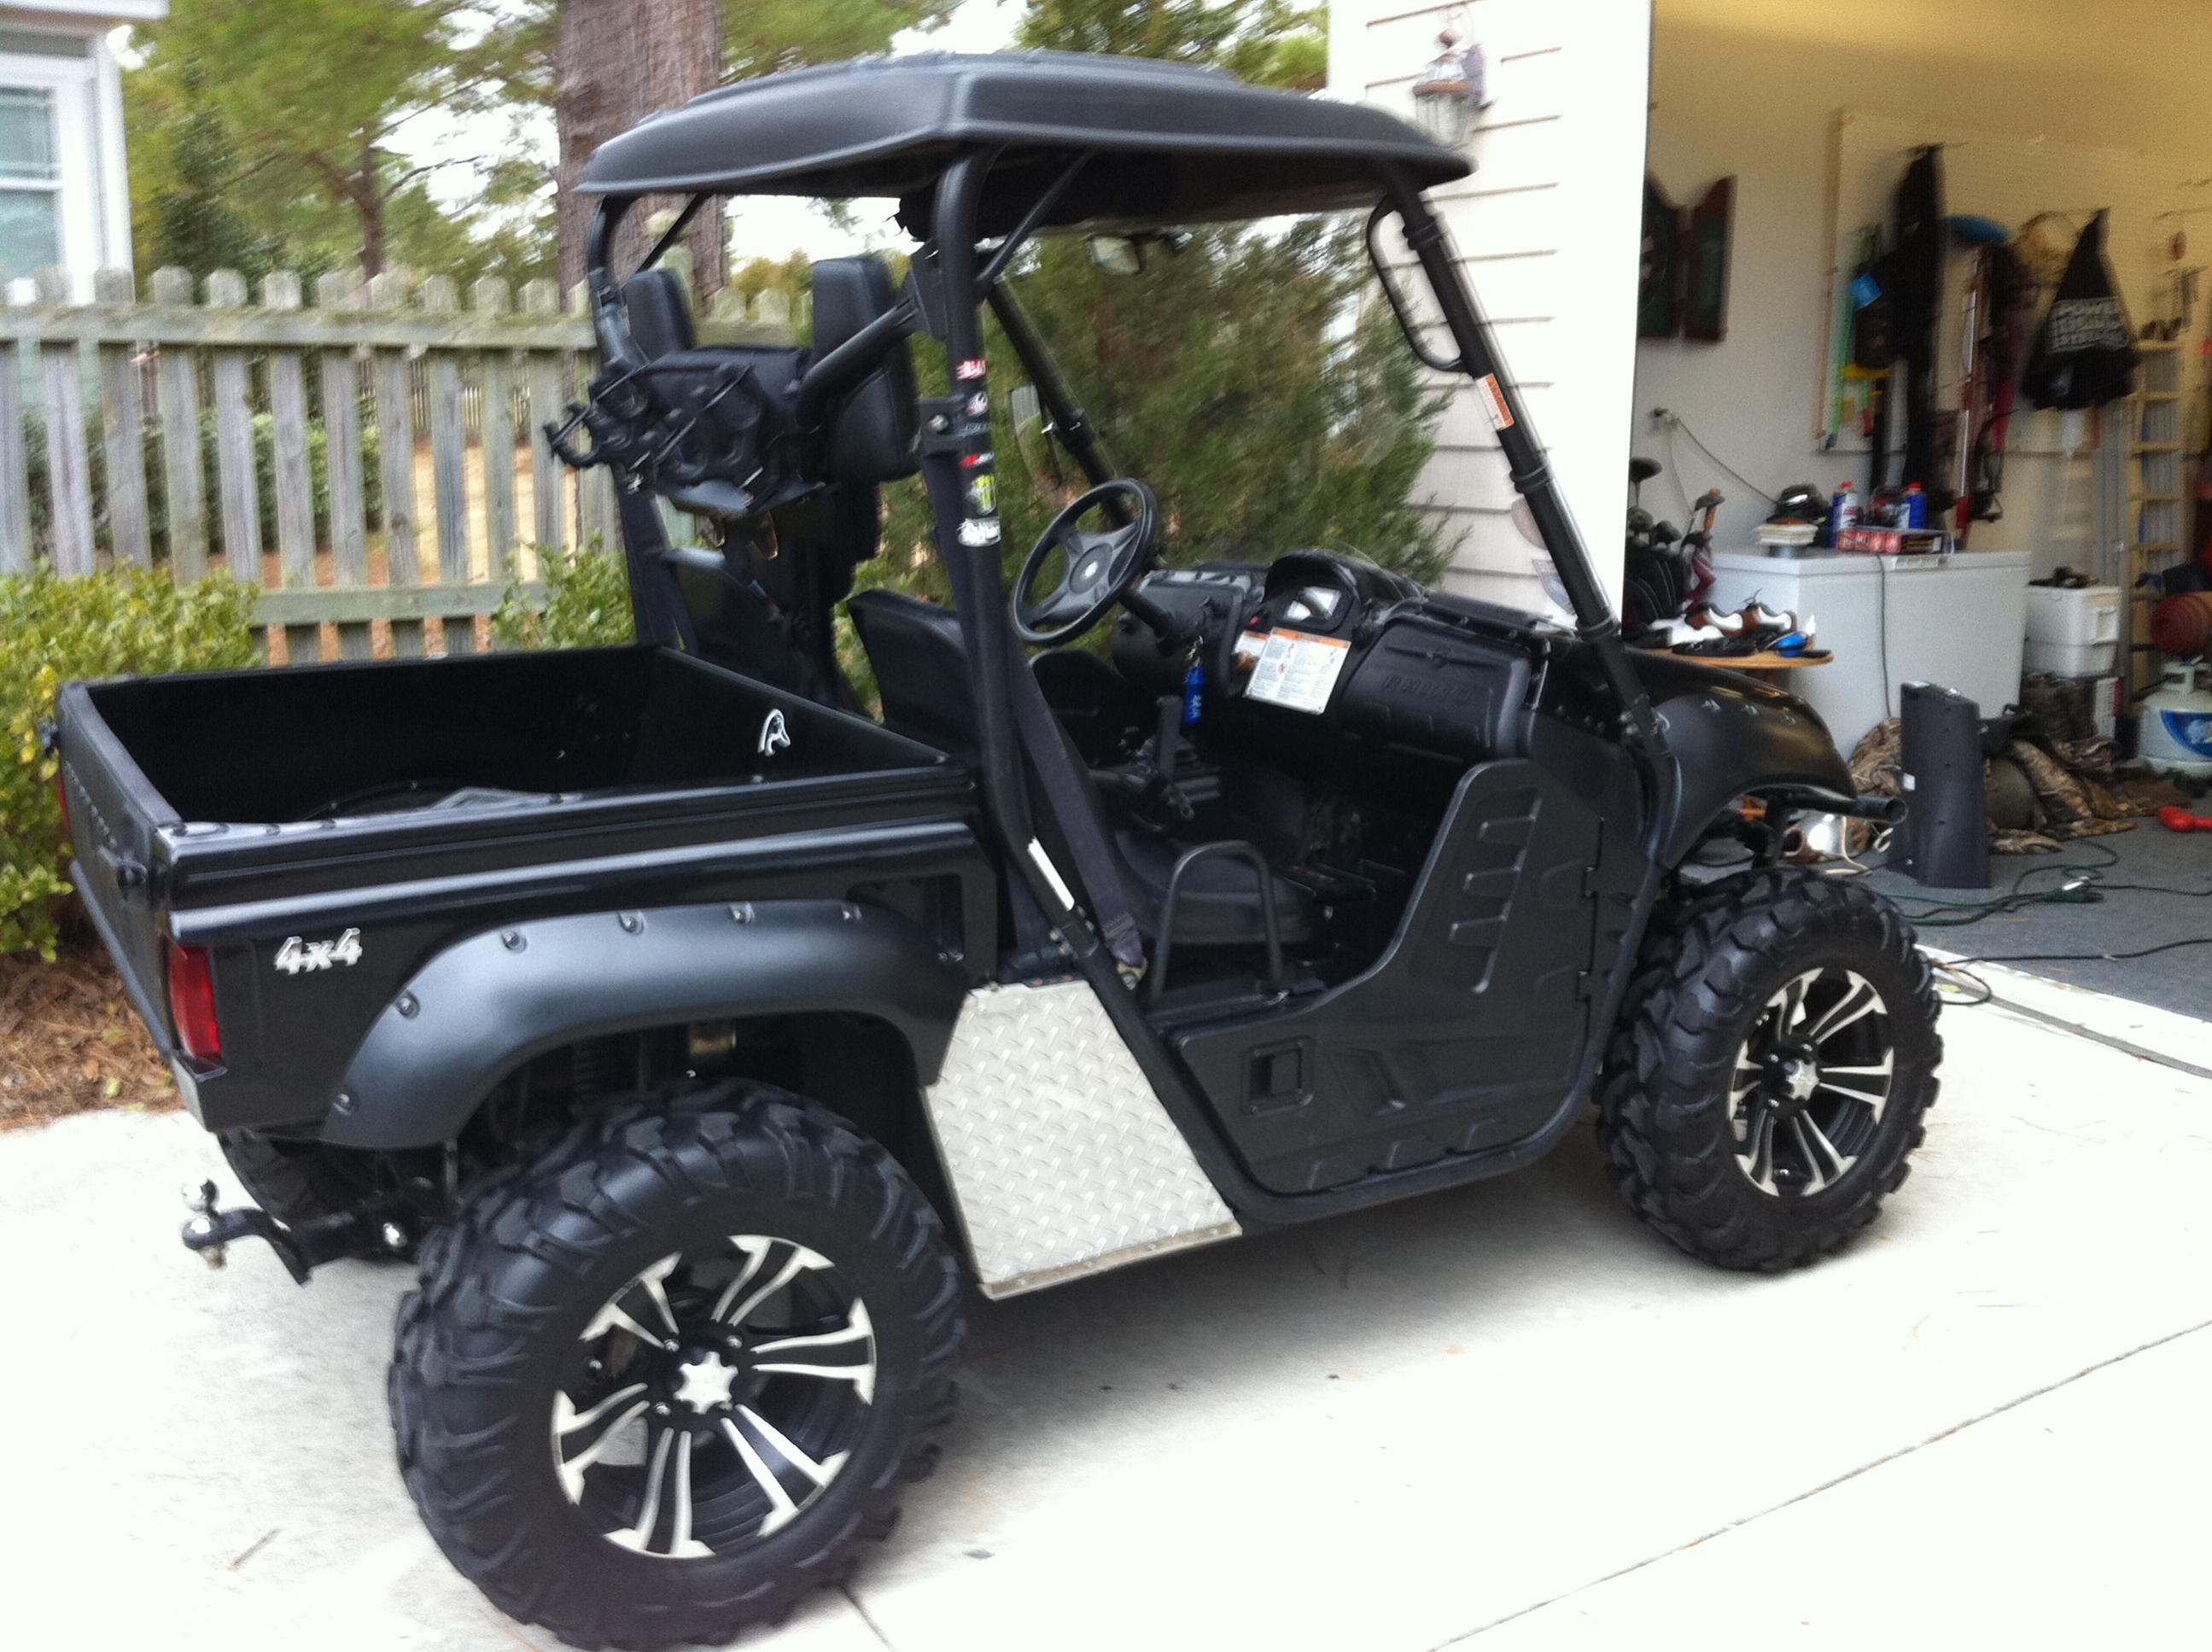 18 Inch Tires >> ITP Wheels & Tires SS312 Matte For Sale - Yamaha Rhino ...